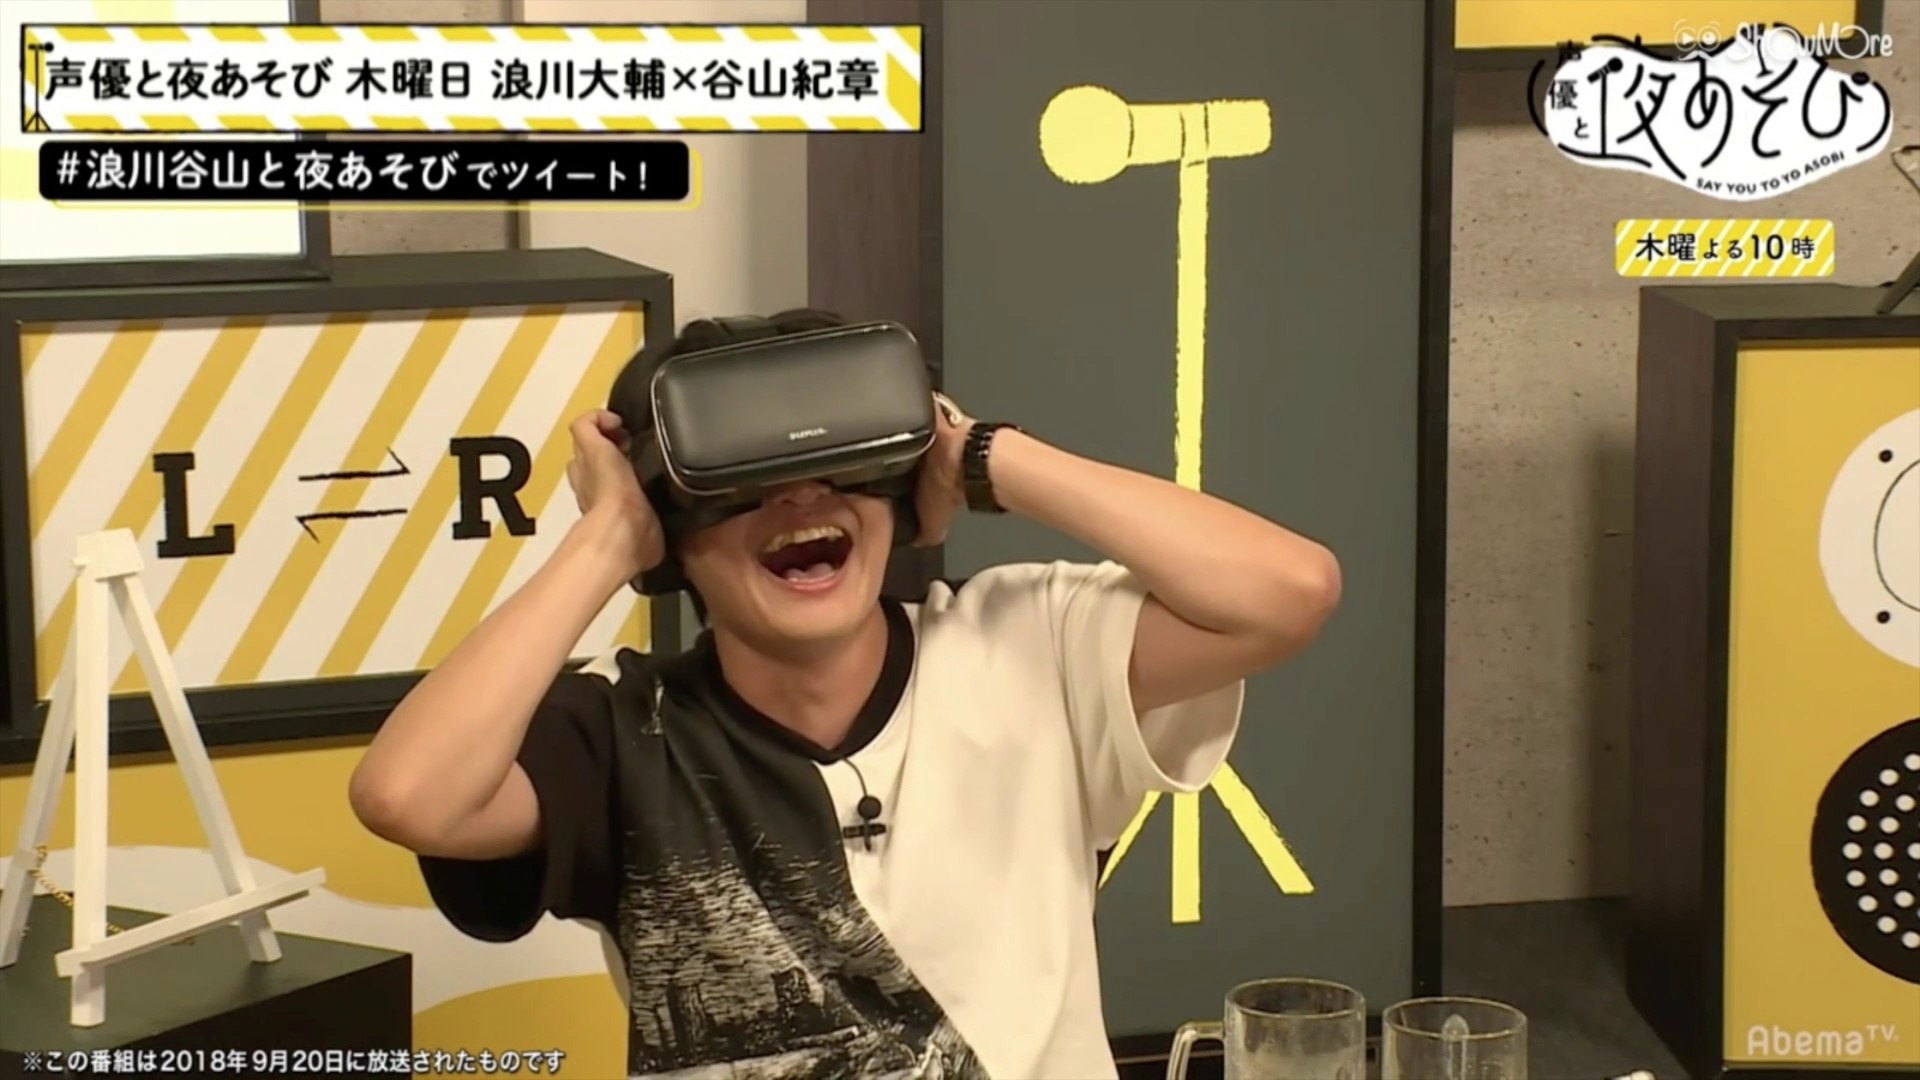 Shimono Hiro watches a VR adult video while everyone else secretly leaves the room